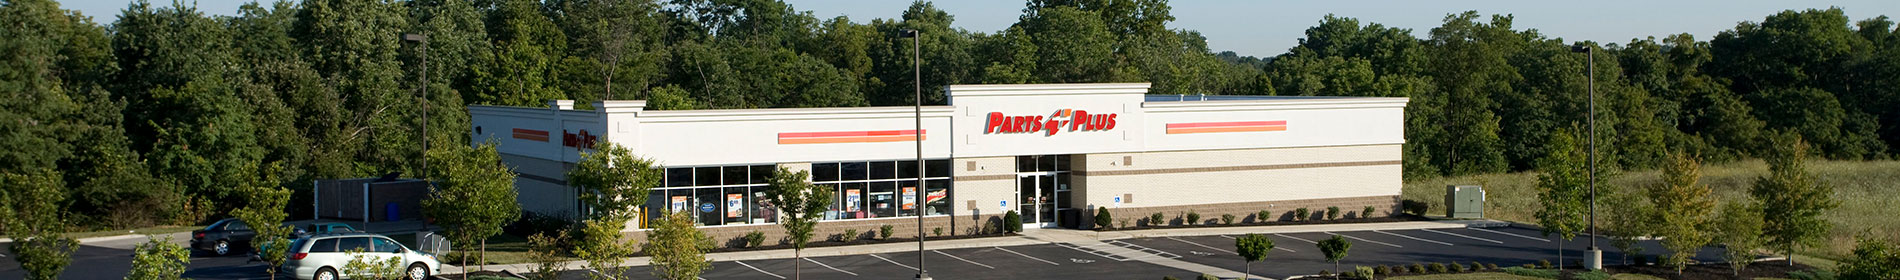 Parts Plus Building in Distance